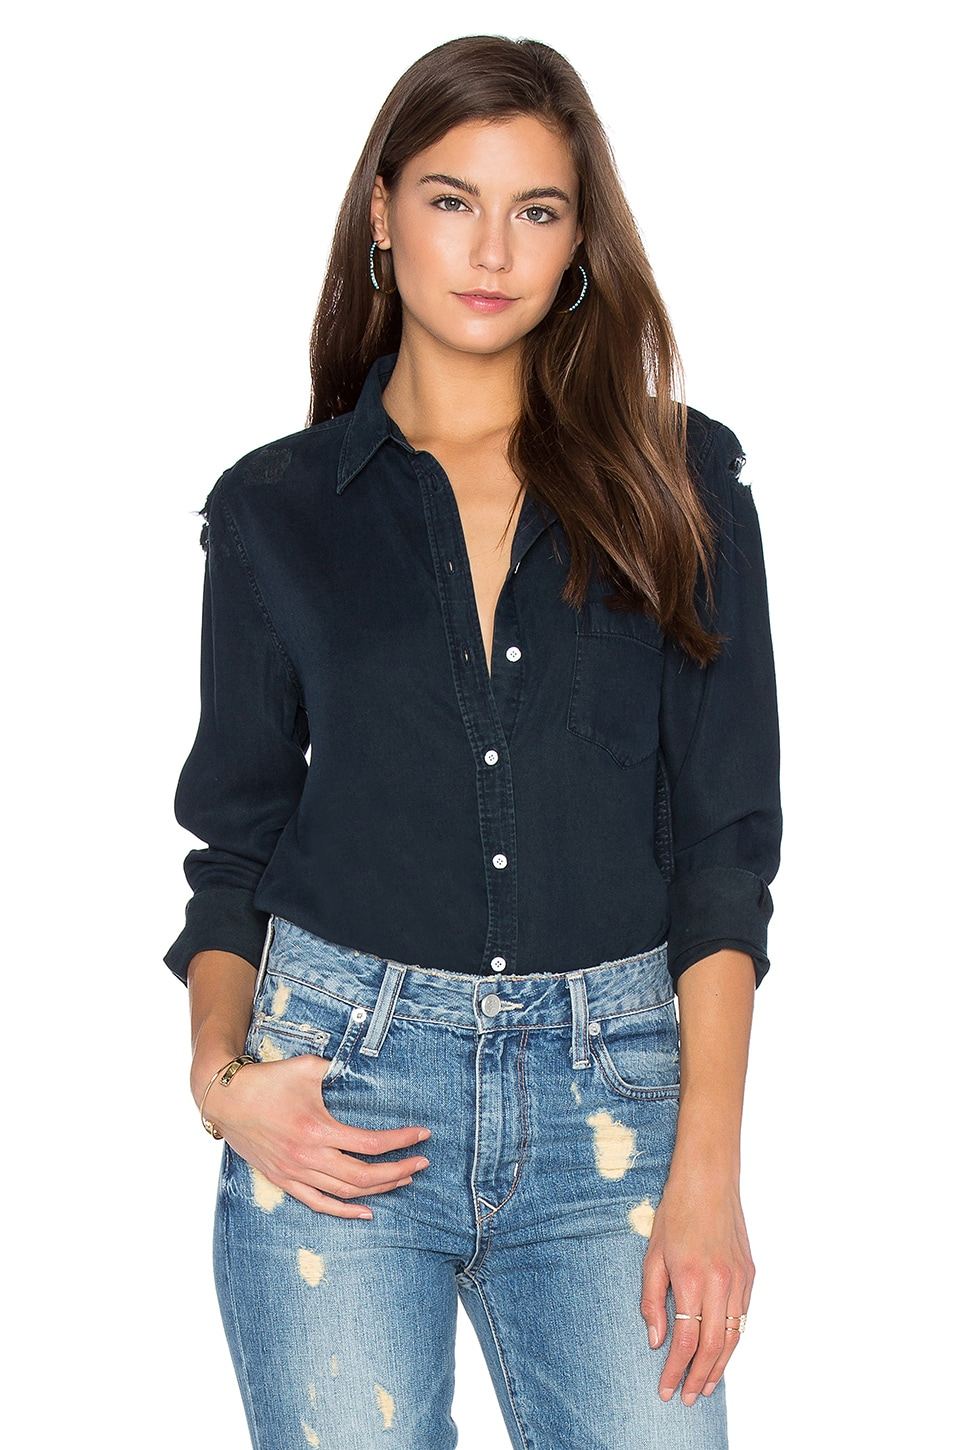 DL1961 Mercer & Spring Button Up in Black Overdye